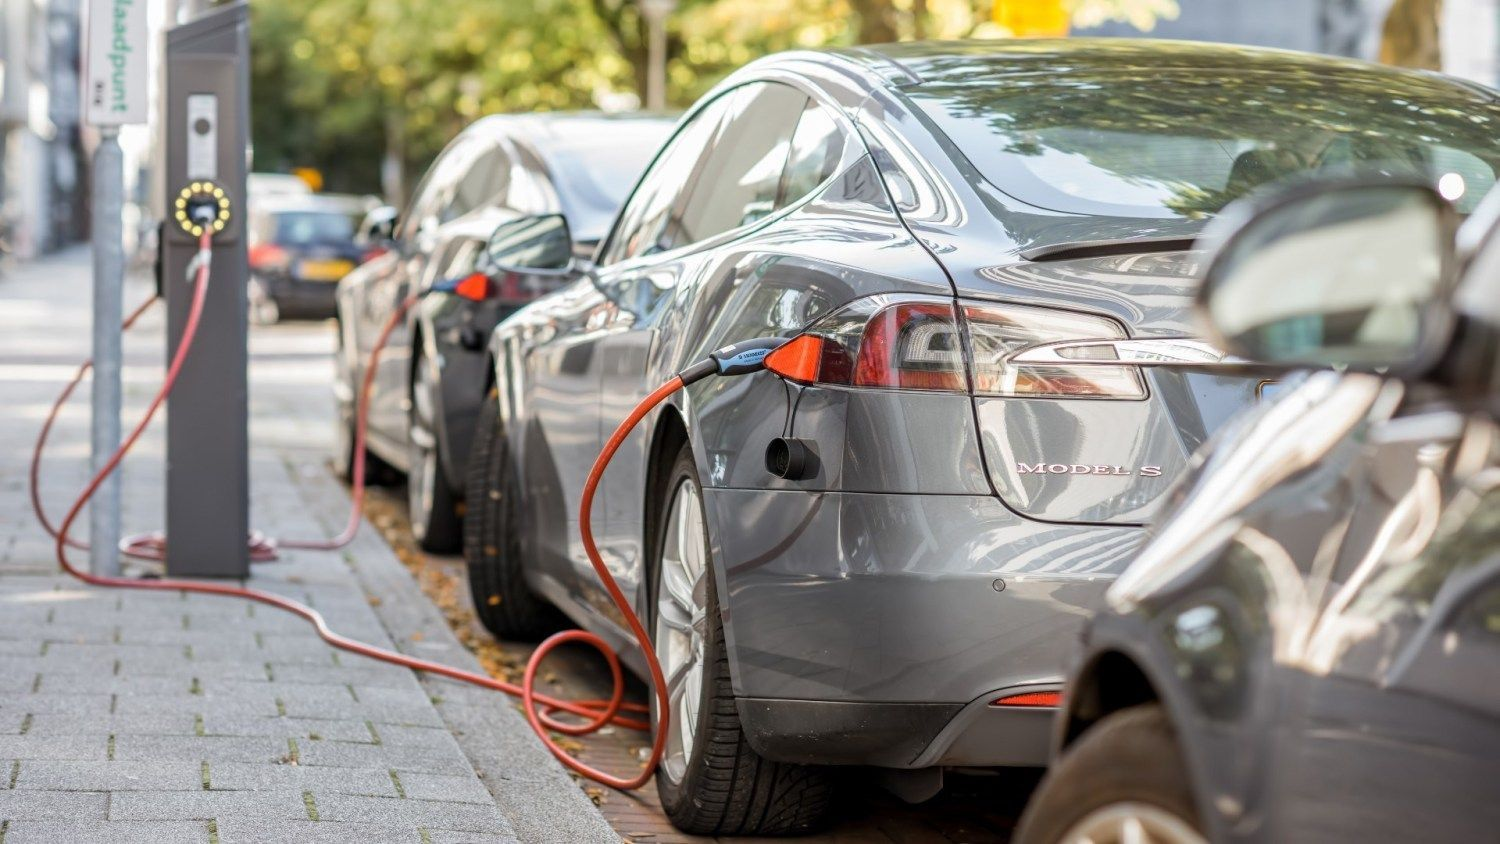 Government DOUBLES funding for electric car street